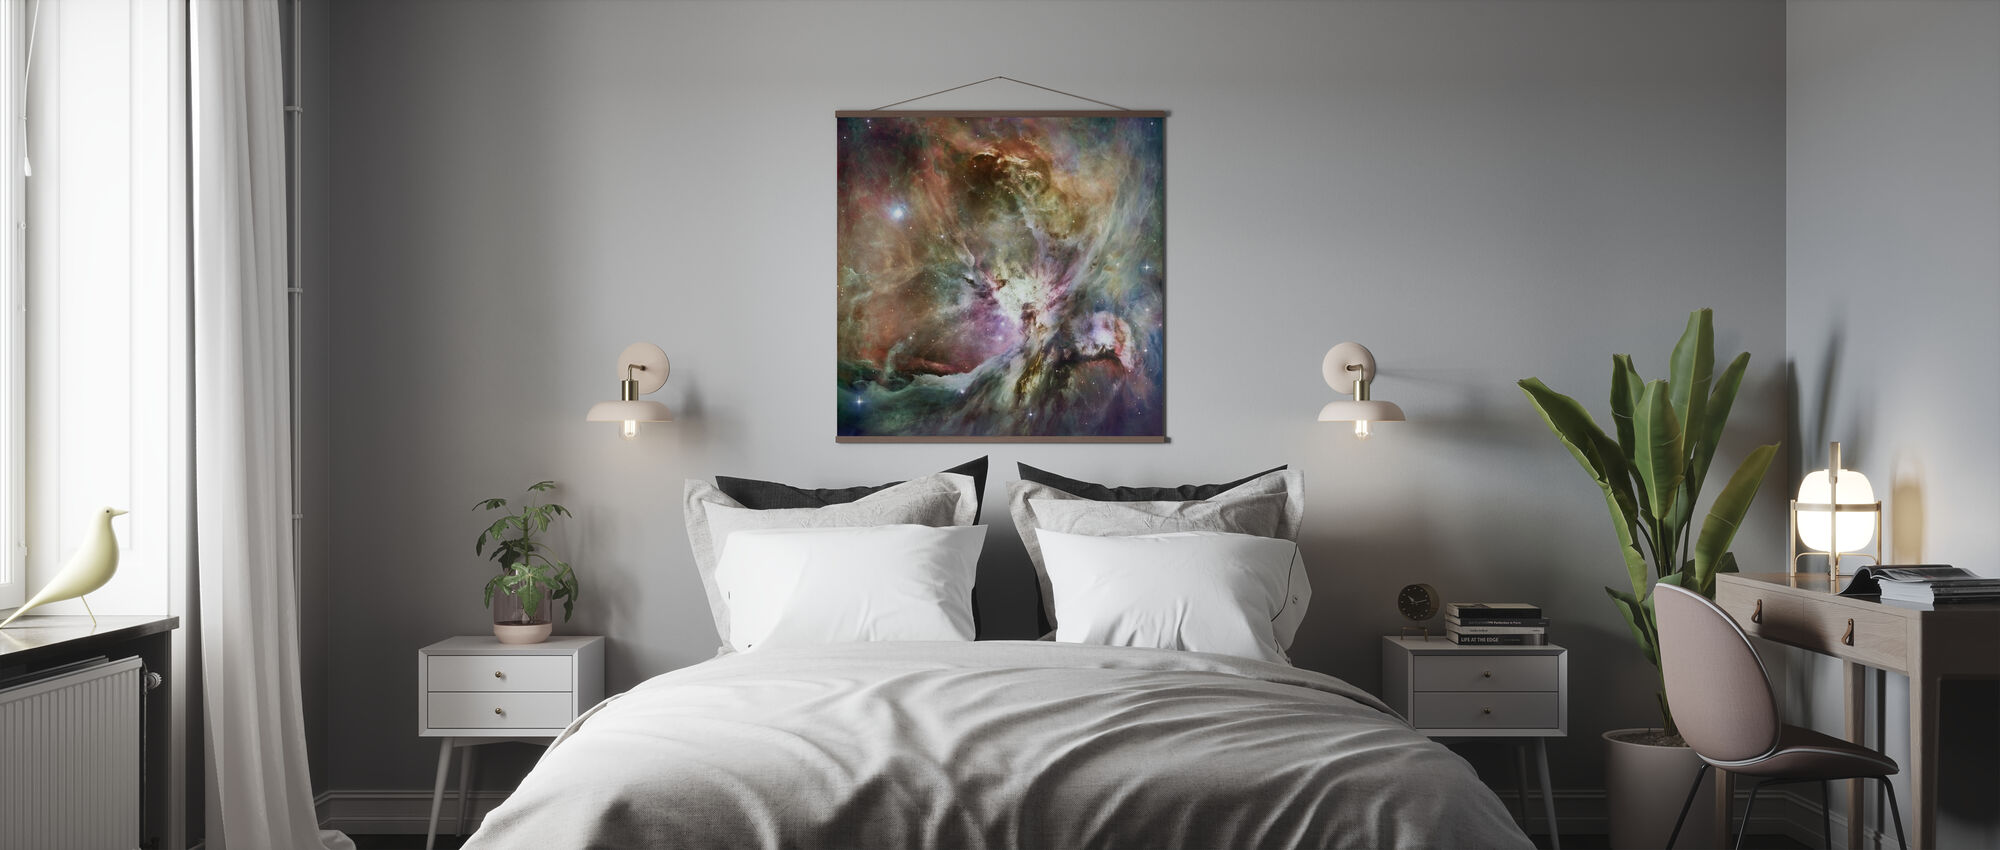 Orion Nebula - Poster - Bedroom